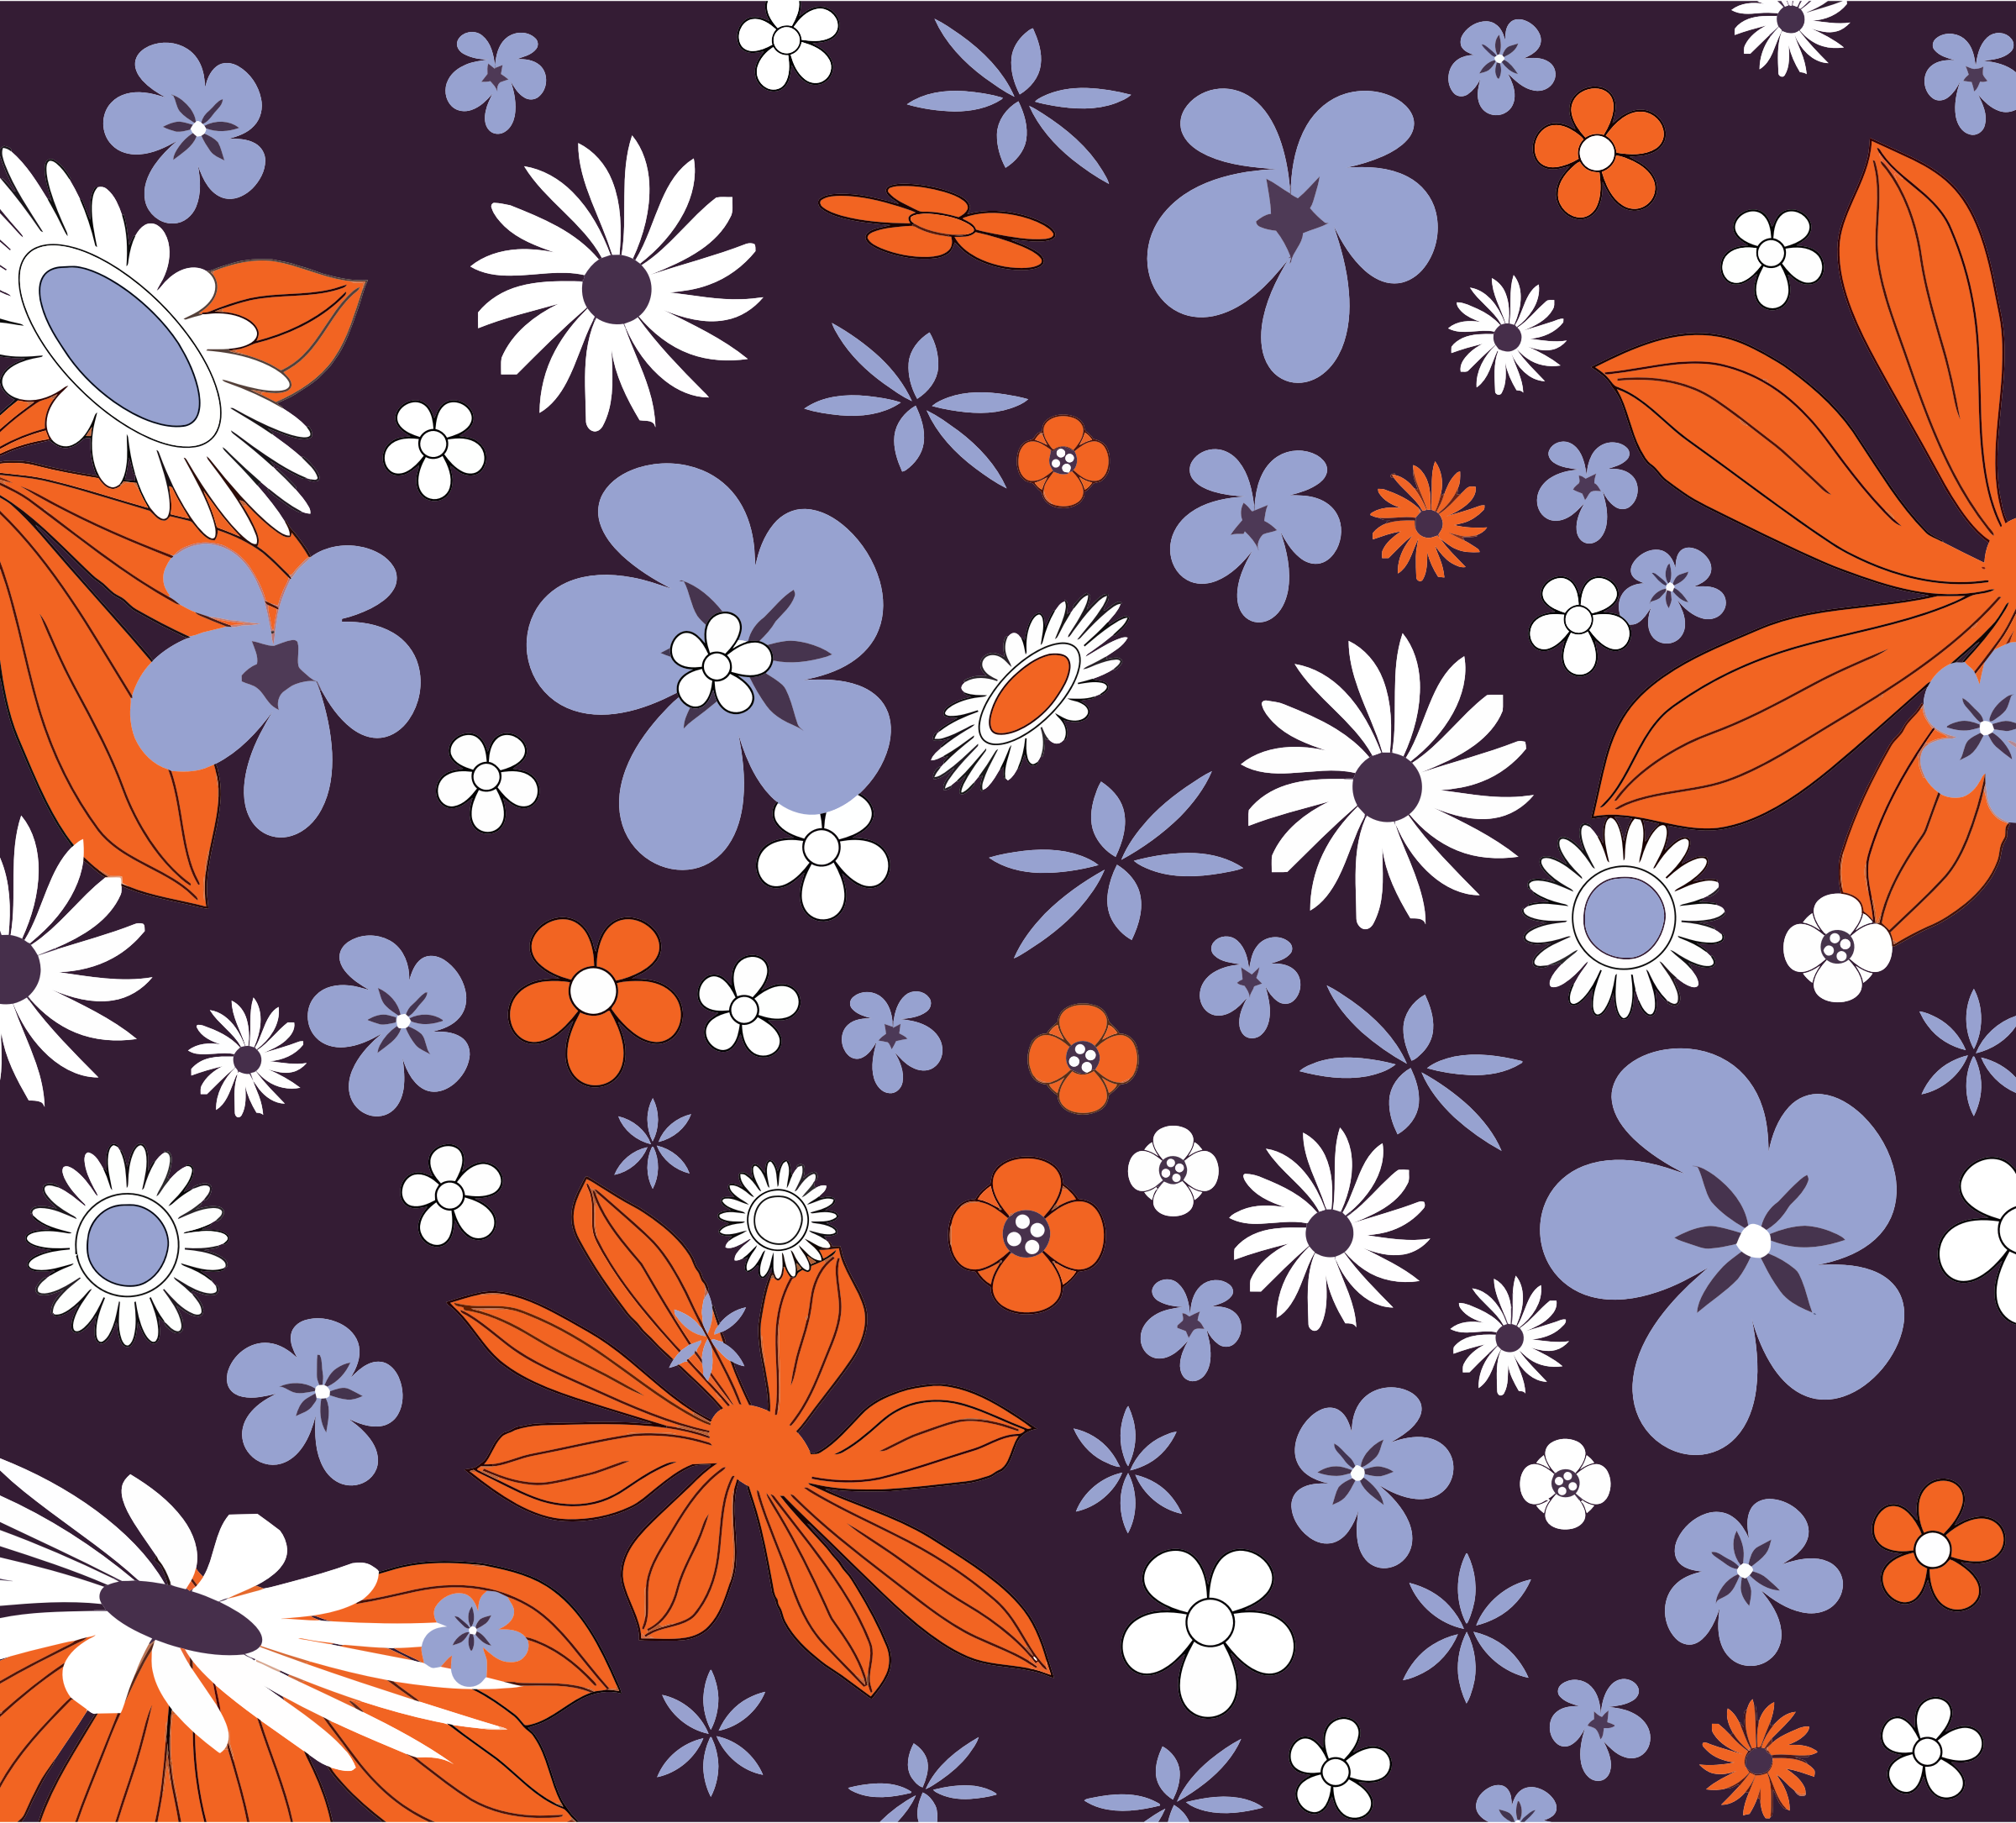 Floral Pattern Background by GDJ